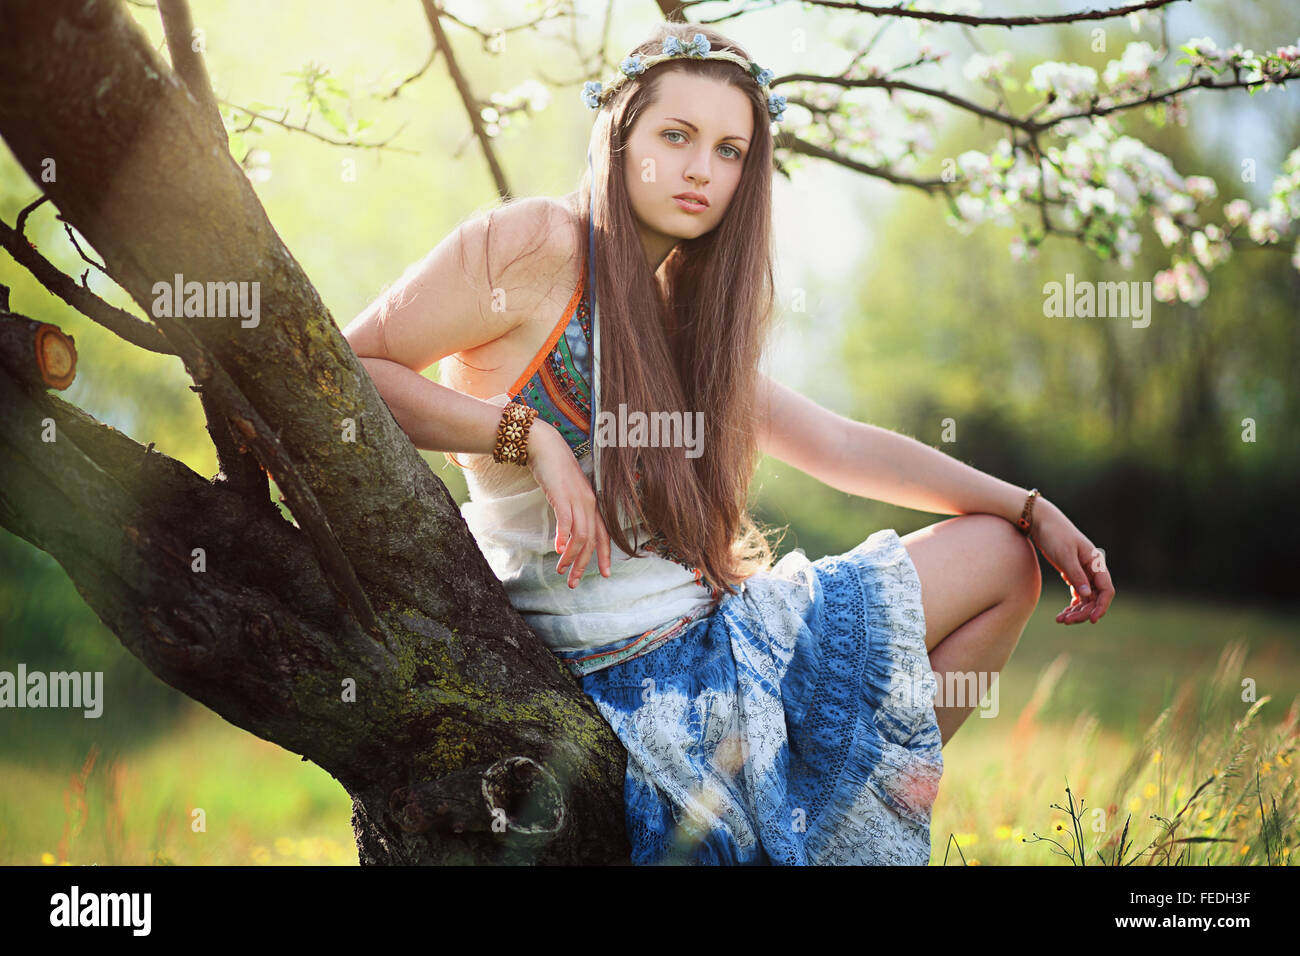 Donna romantica nel prato di fiori . Hippie e gypsy dress Foto Stock